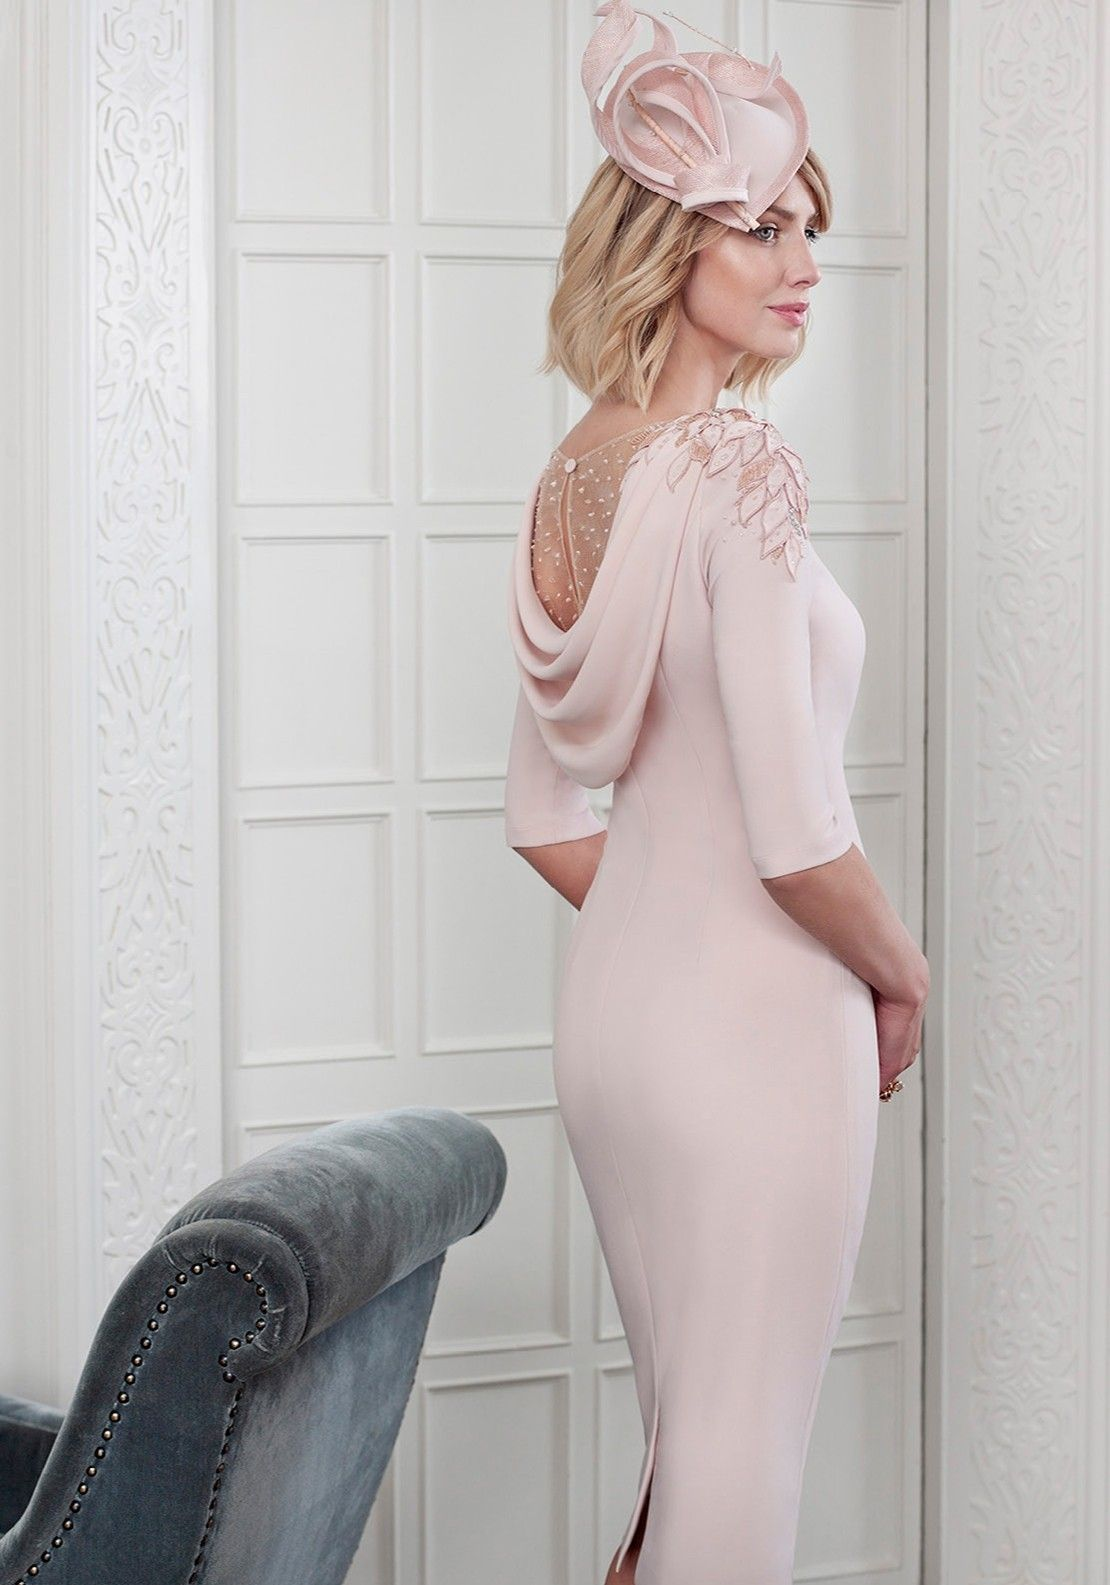 John Charles Applique Trim Cowl Back Dress Blush Pink Mother Of Bride Outfits Bride Clothes Mother Of The Bride Fashion